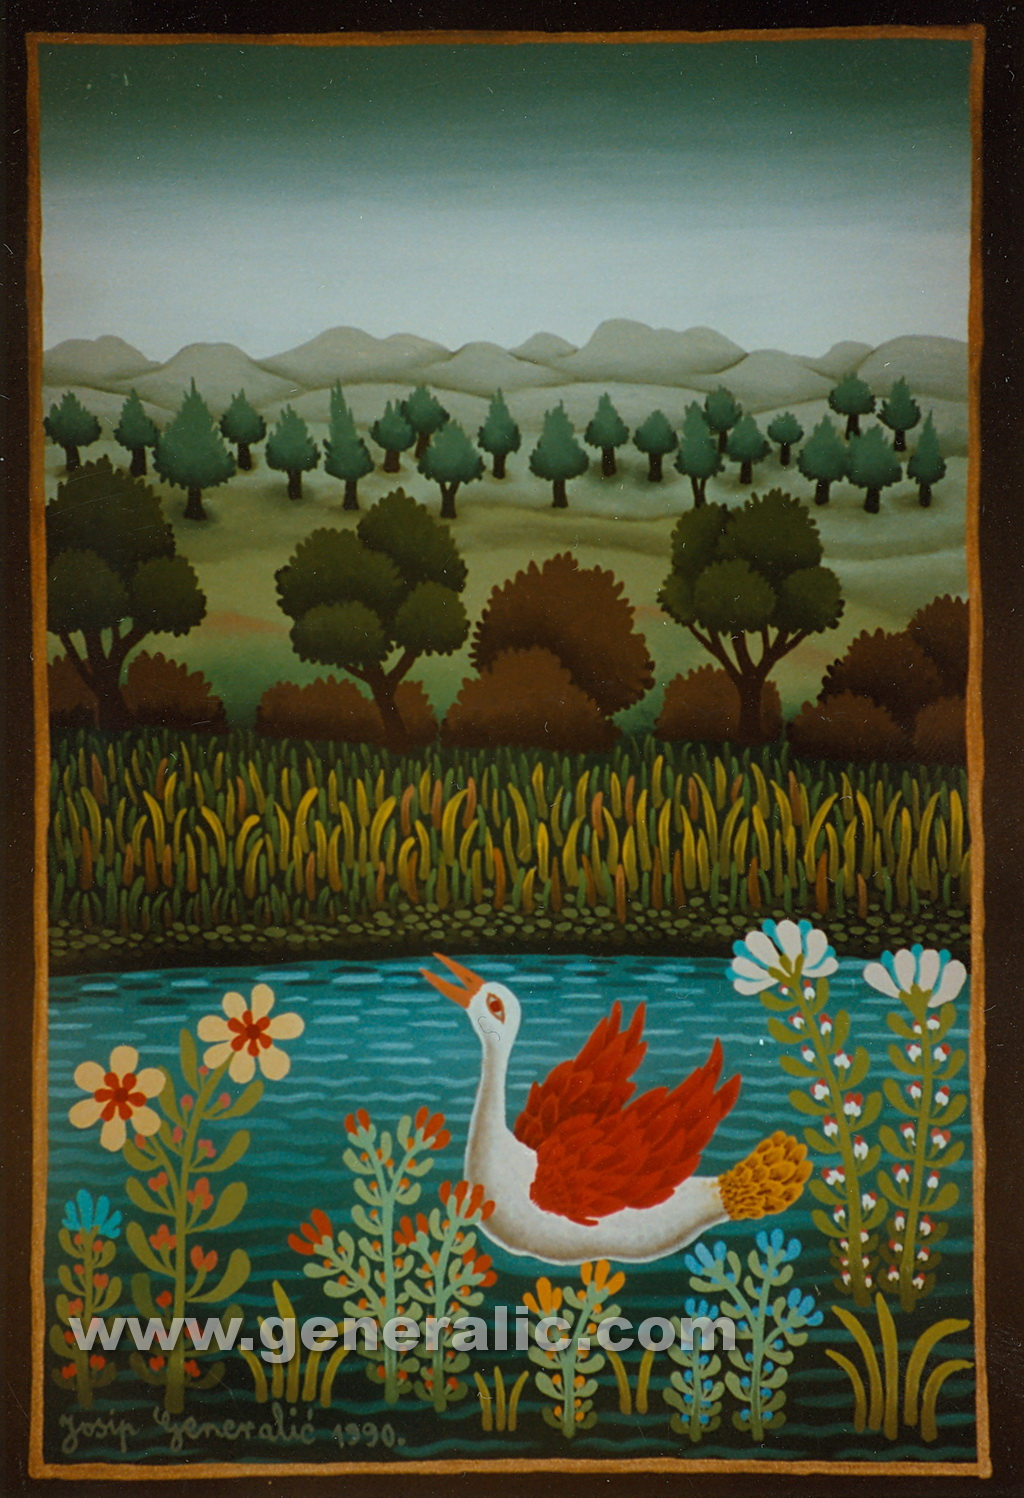 Josip Generalic, 1990, Swan with red wings, oil on glass